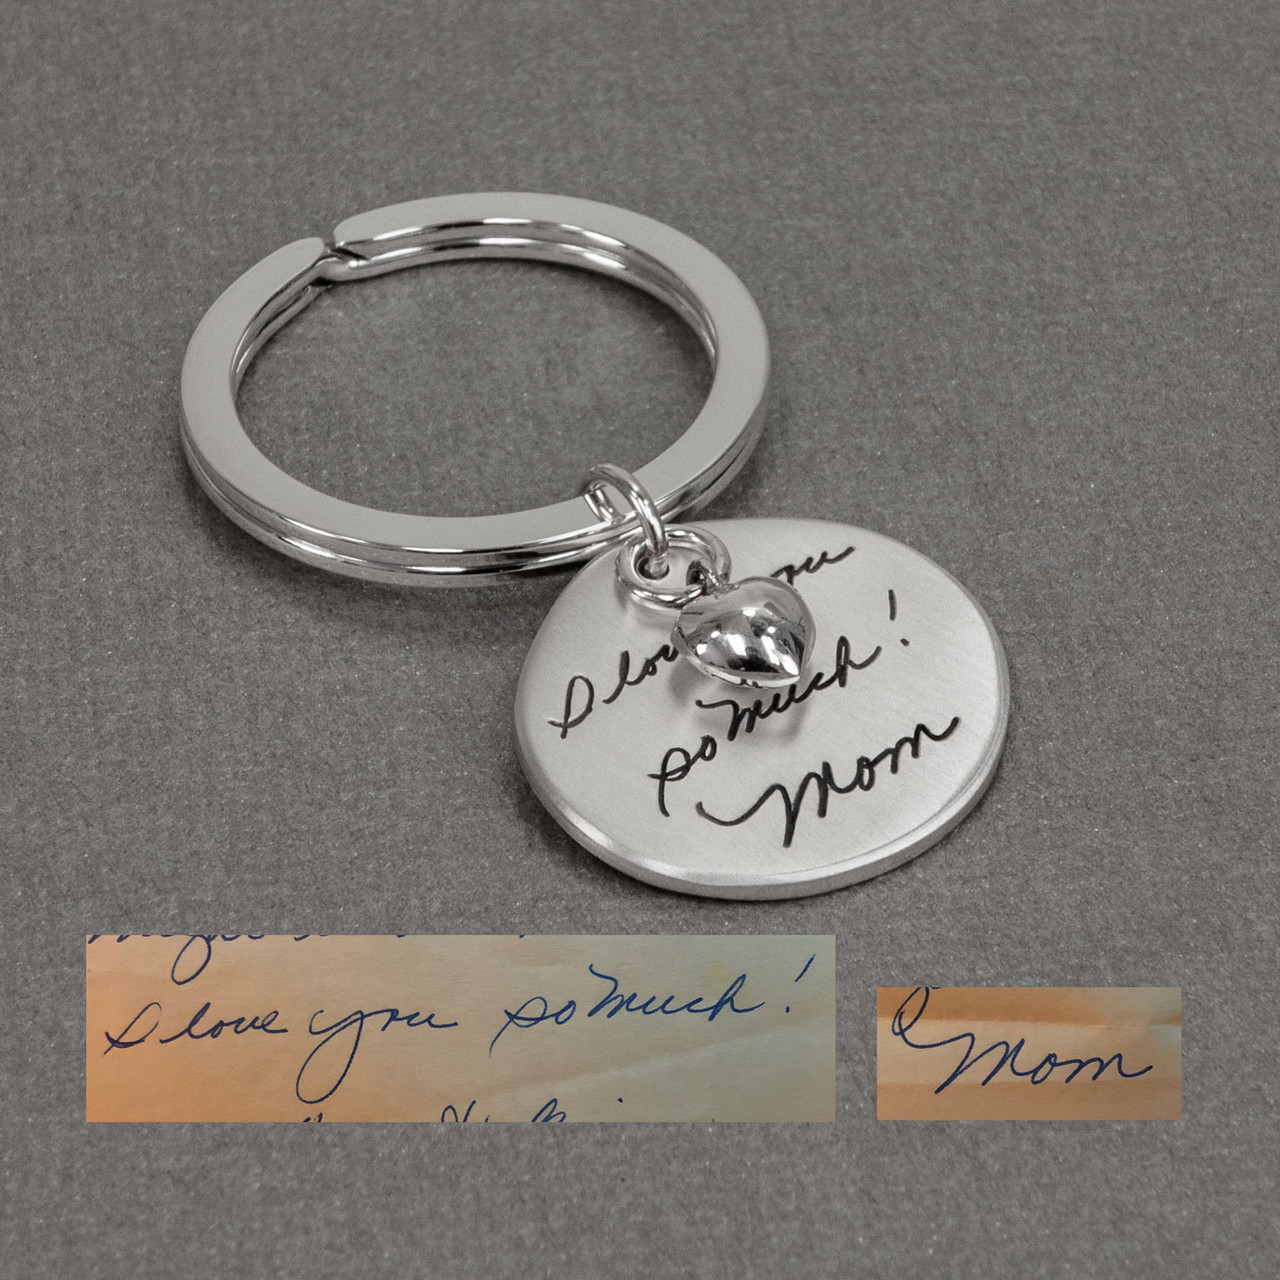 Handwriting on sterling silver key chain, shown with original handwriting